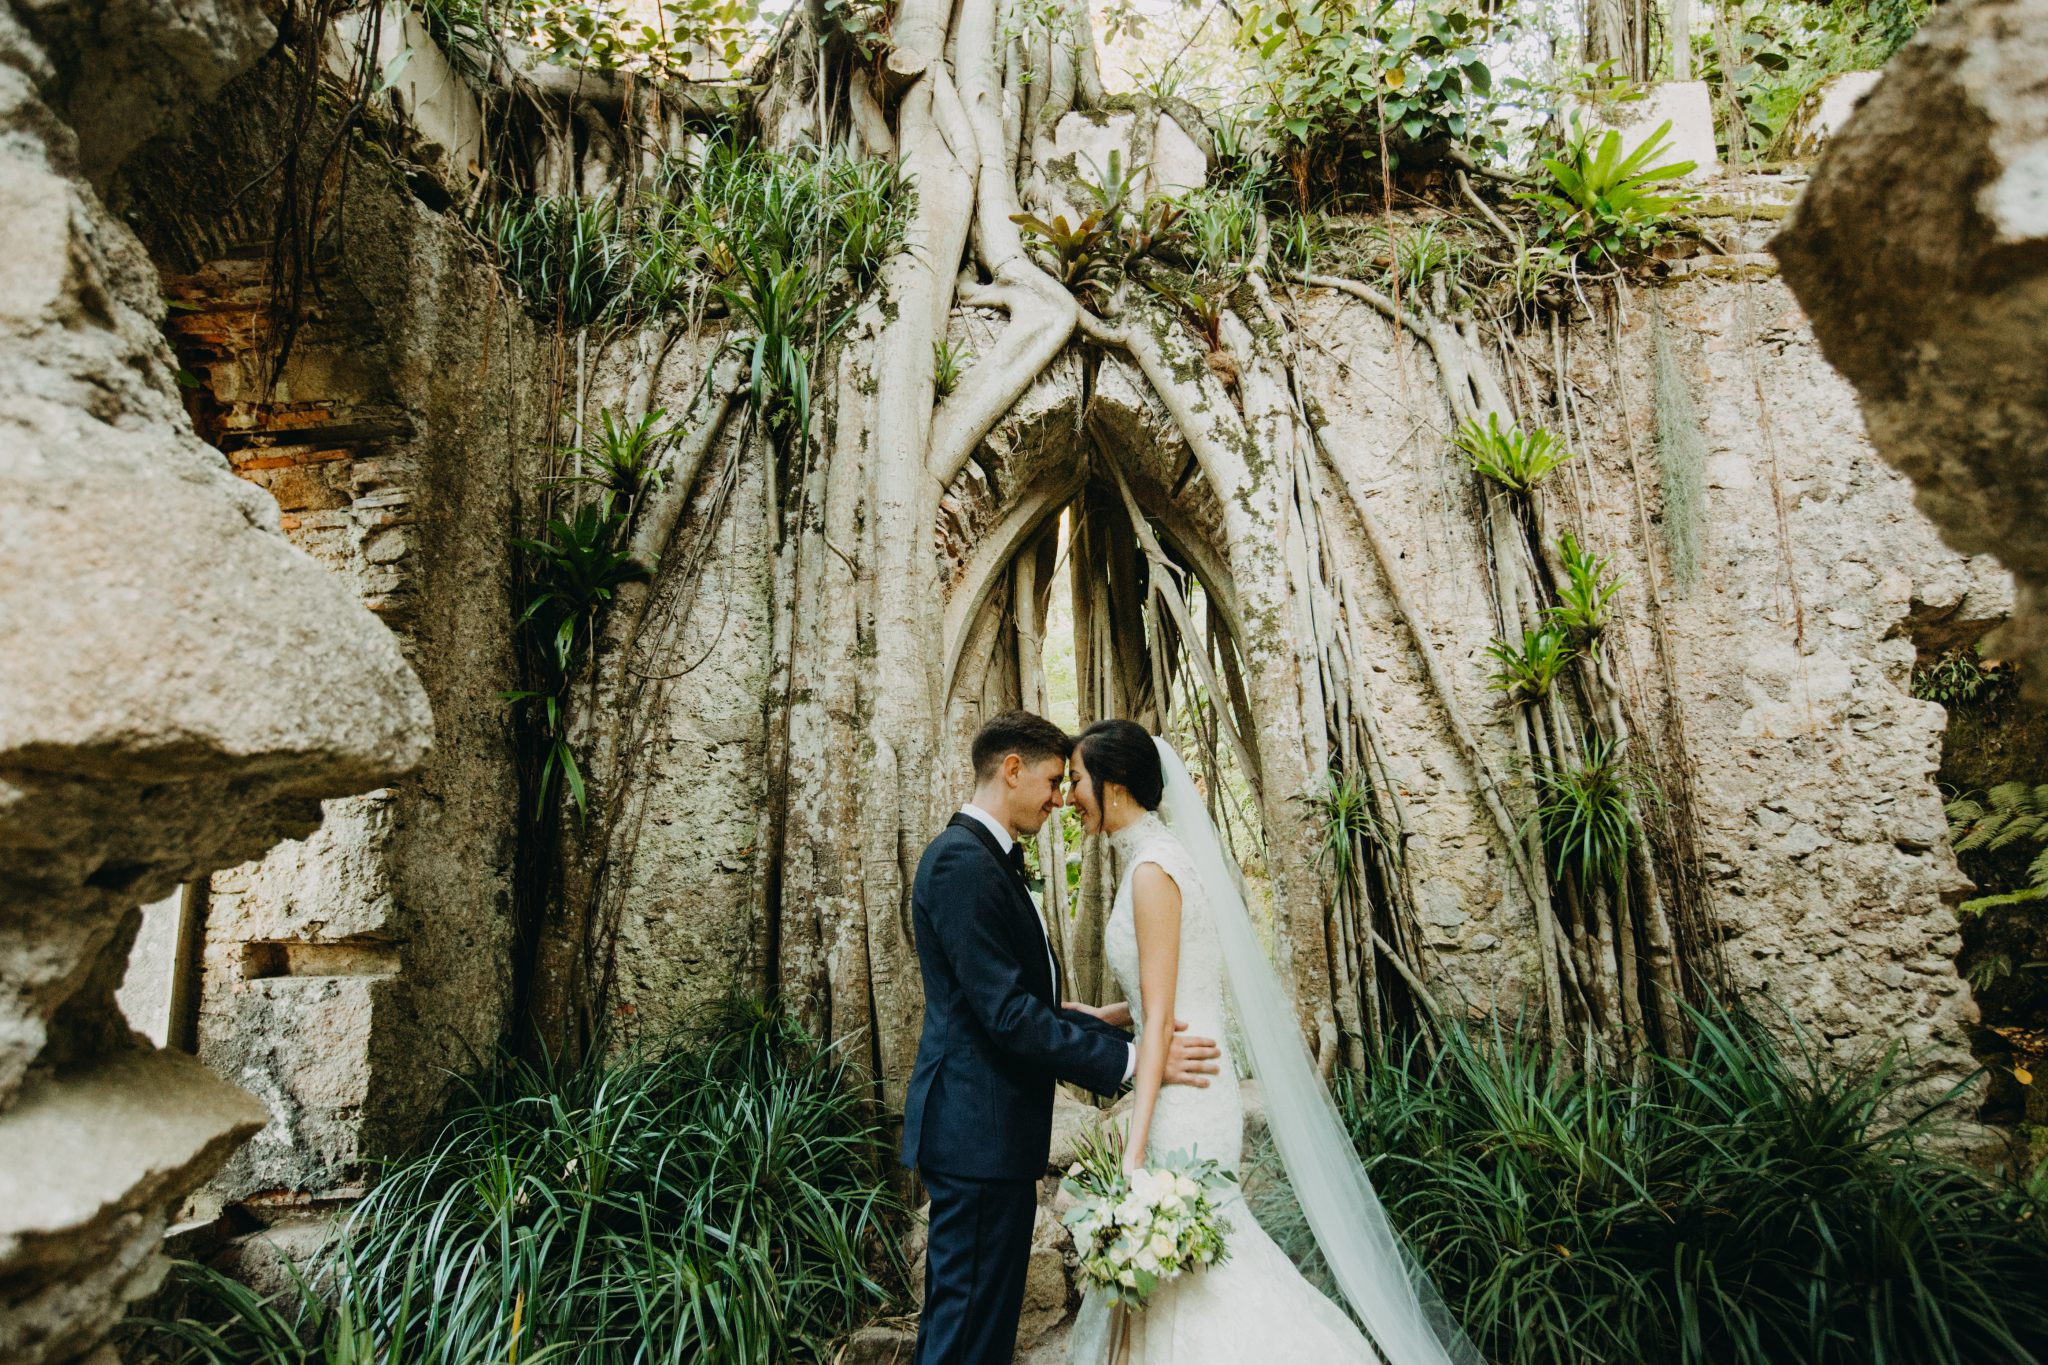 Bride and groom look at each other with their foreheads touching with the ruins of an old church and an overgrown tree in the background.